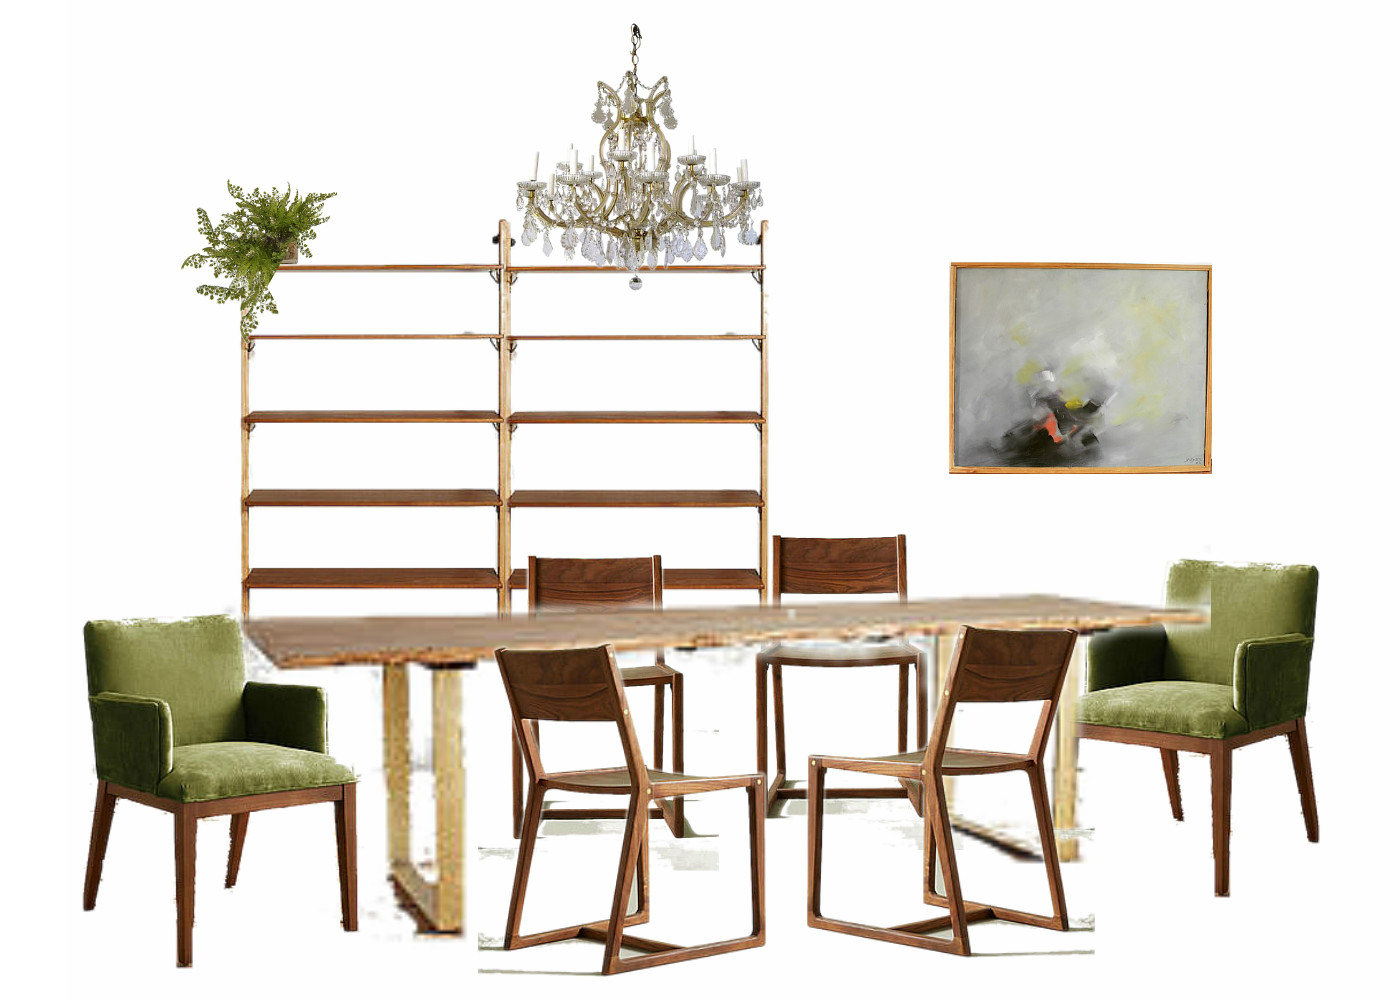 Dining Room design board.jpg